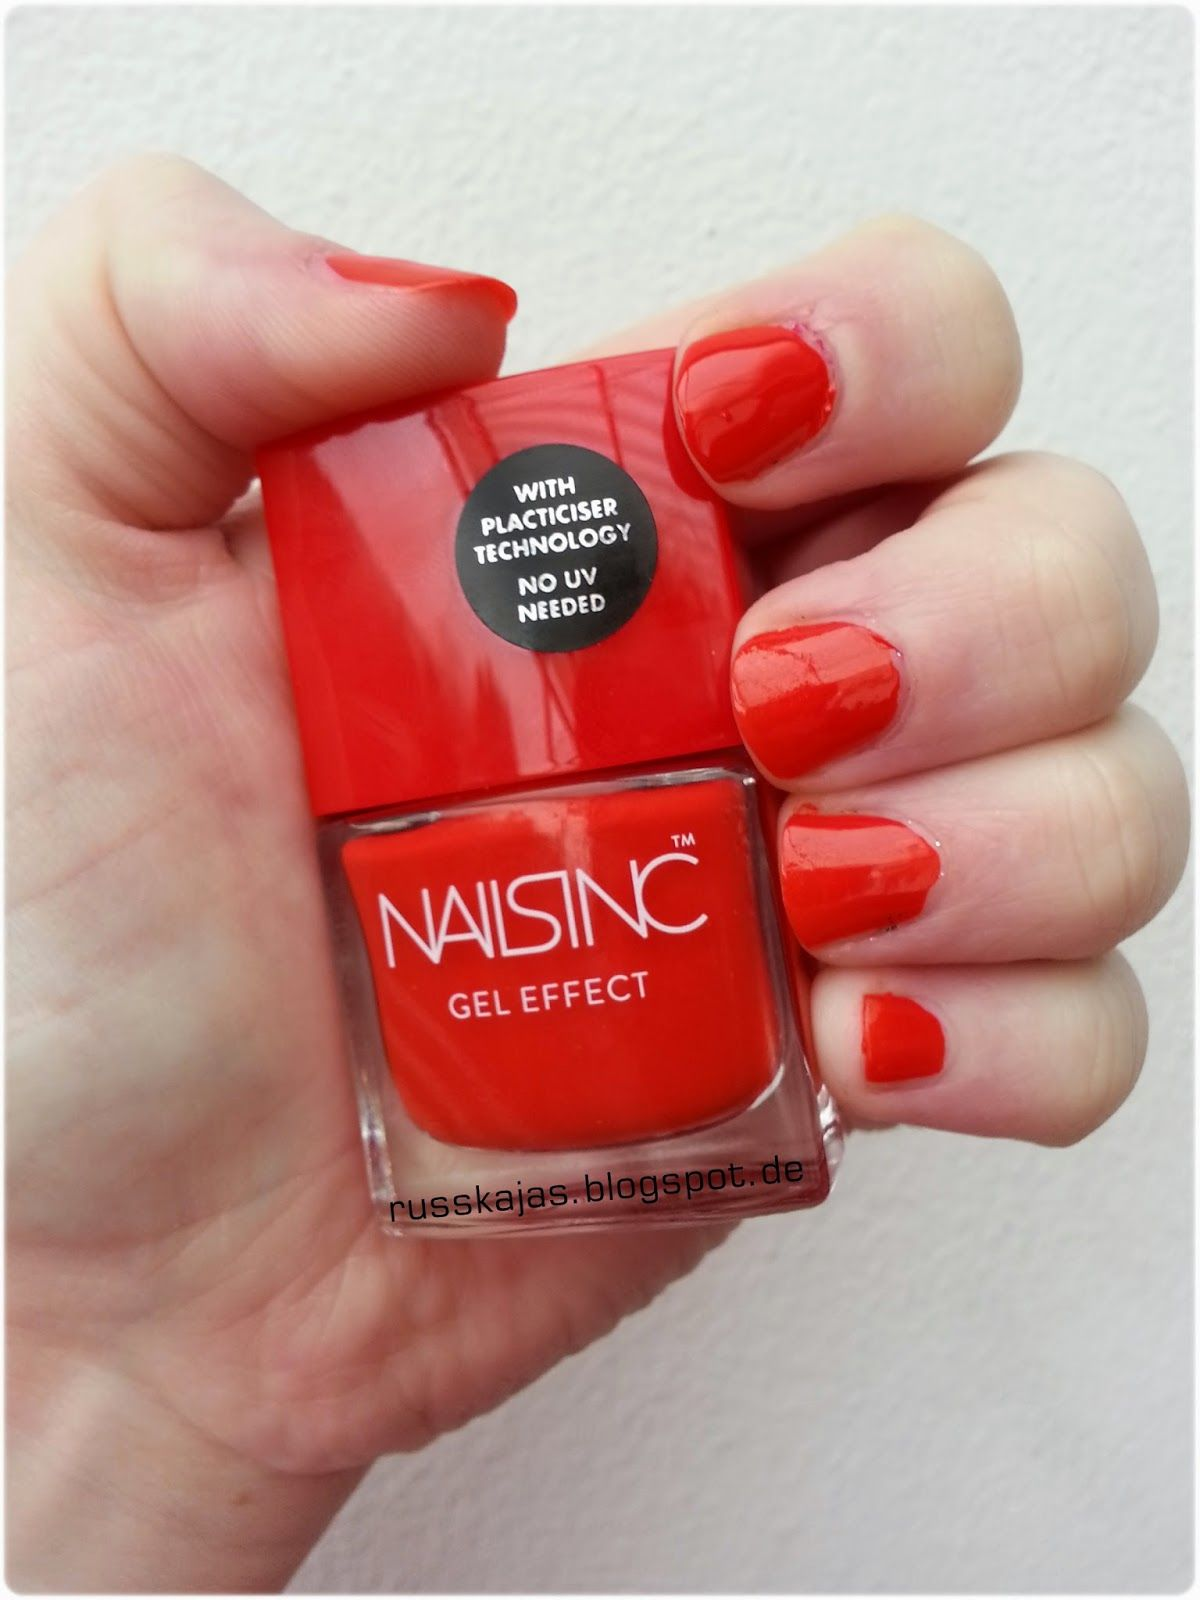 Nails inc gel nail colors and gel nail polish on pinterest - Notd Nails Inc West End